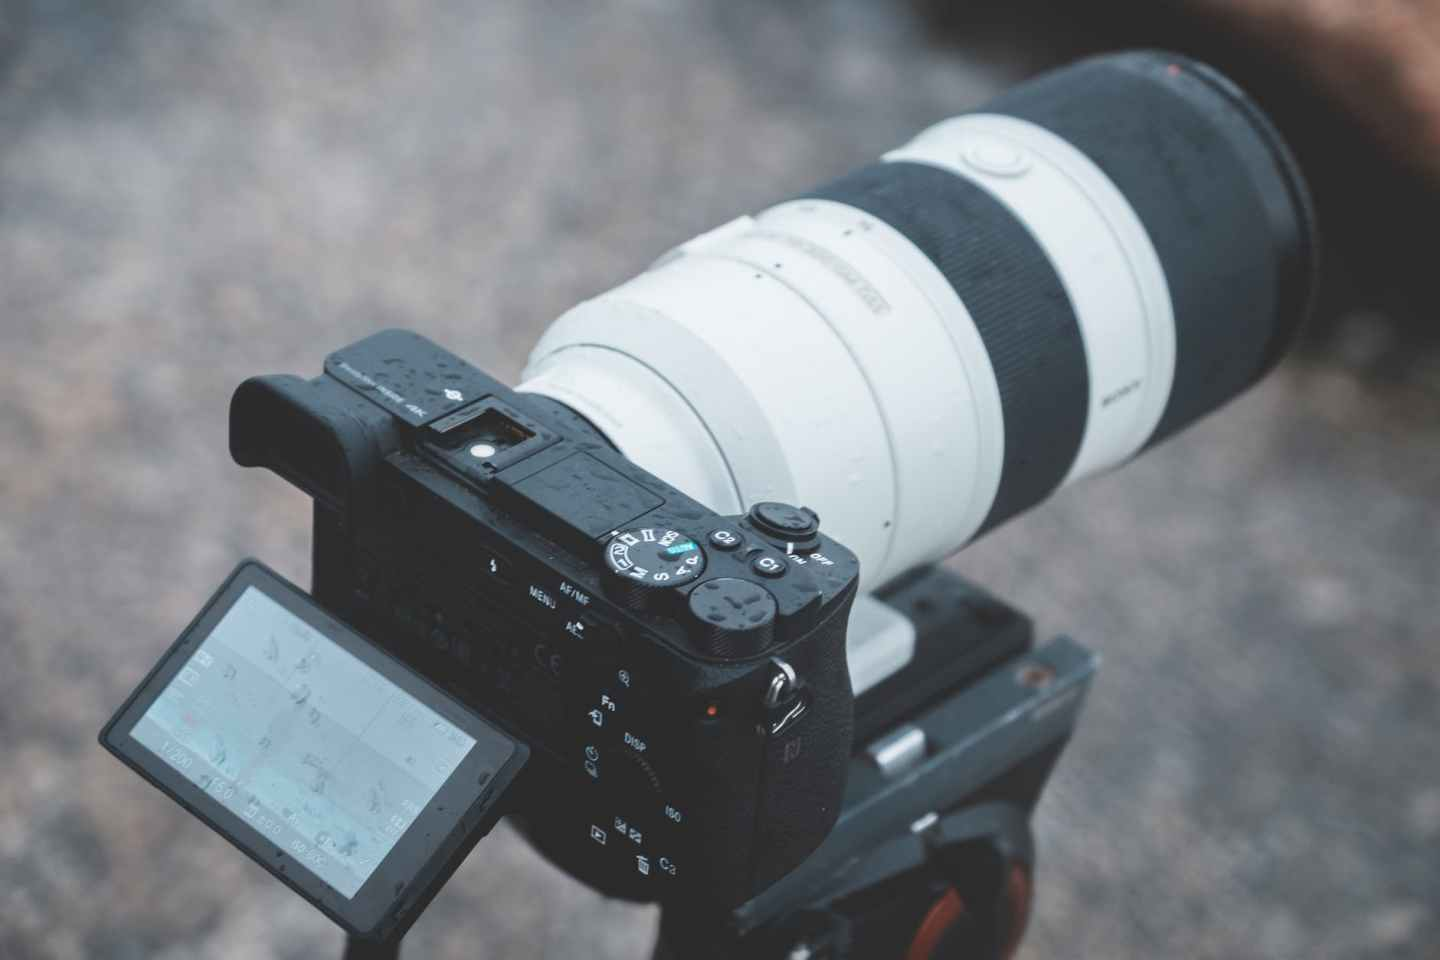 professional photo camera with long focus lens placed on street